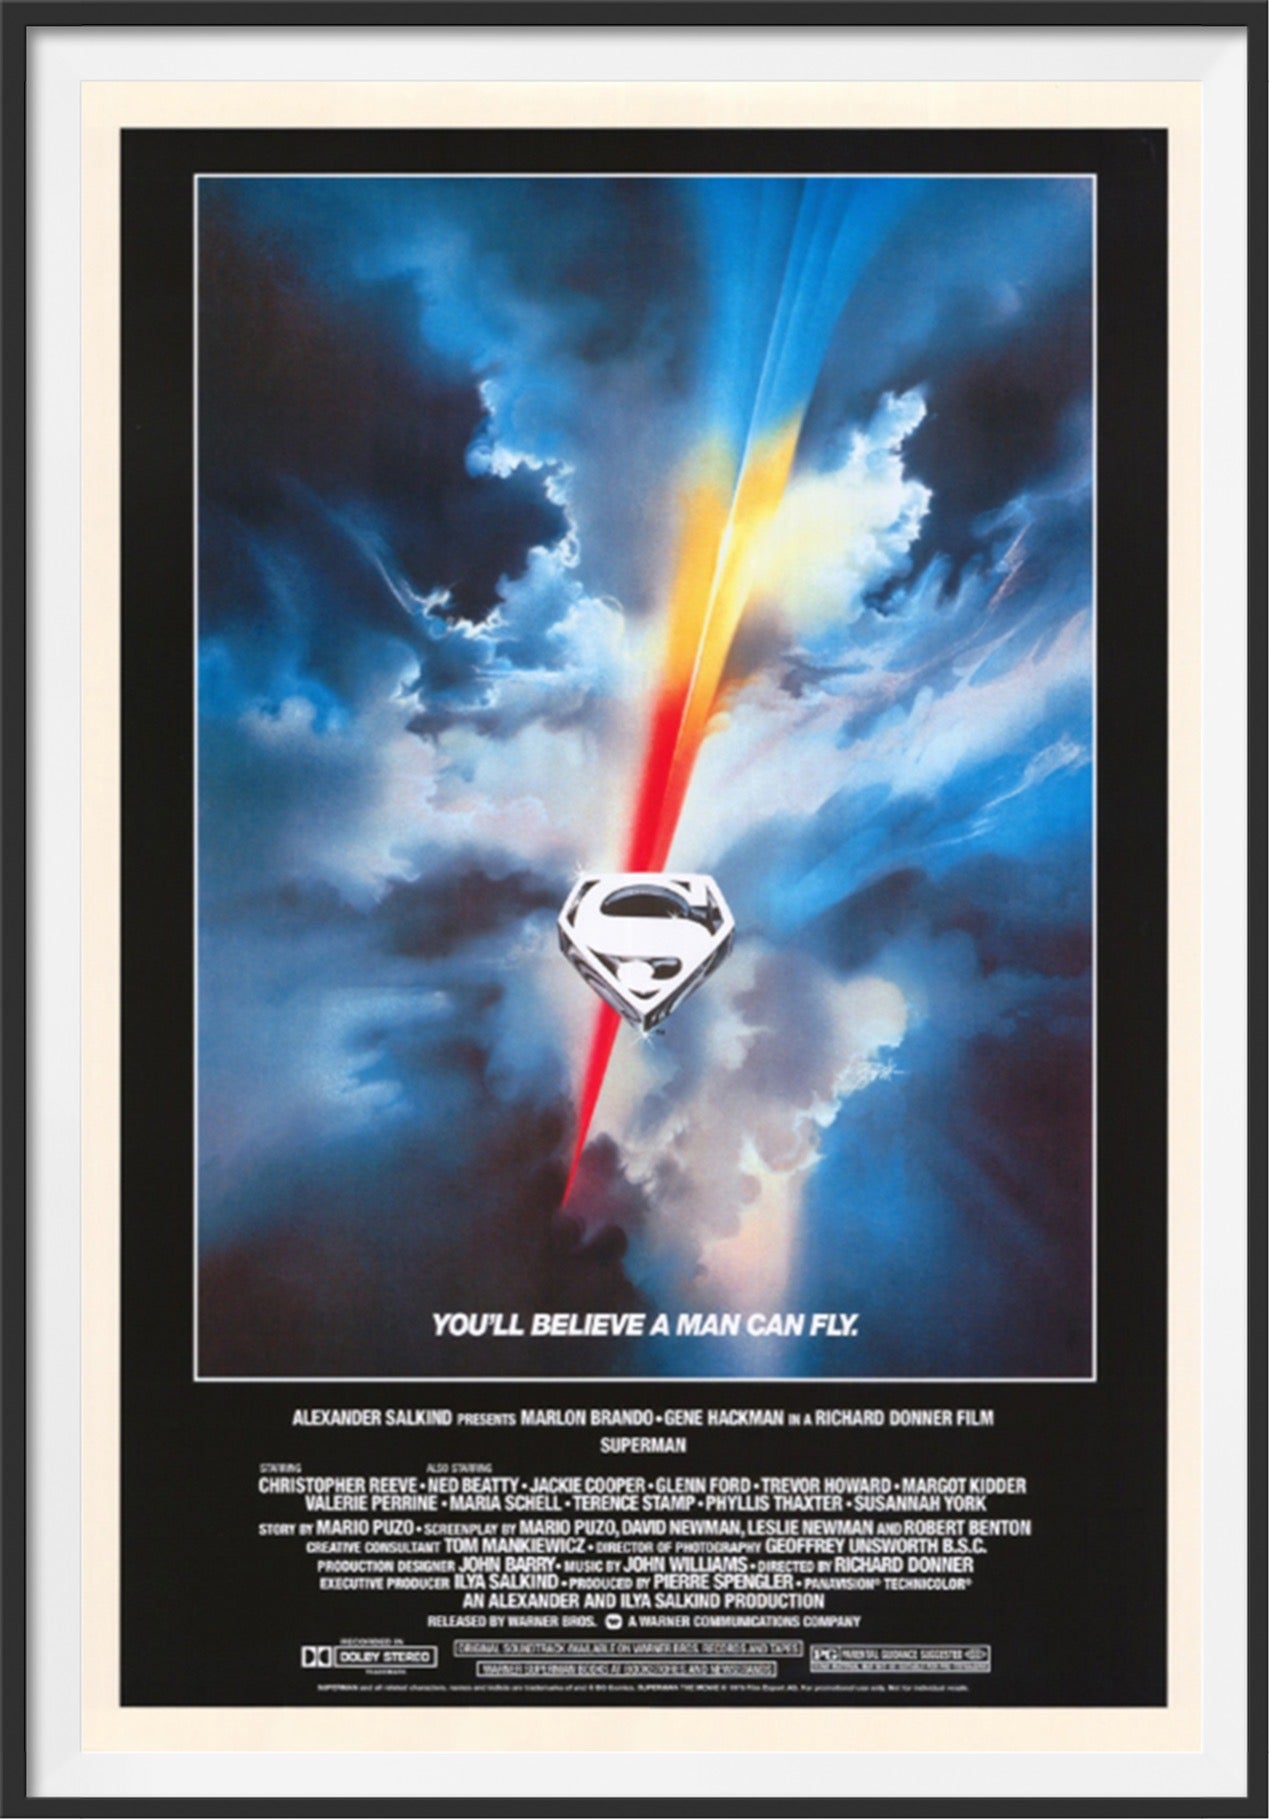 An original movie poster from 2002 for the 1978 film Superman